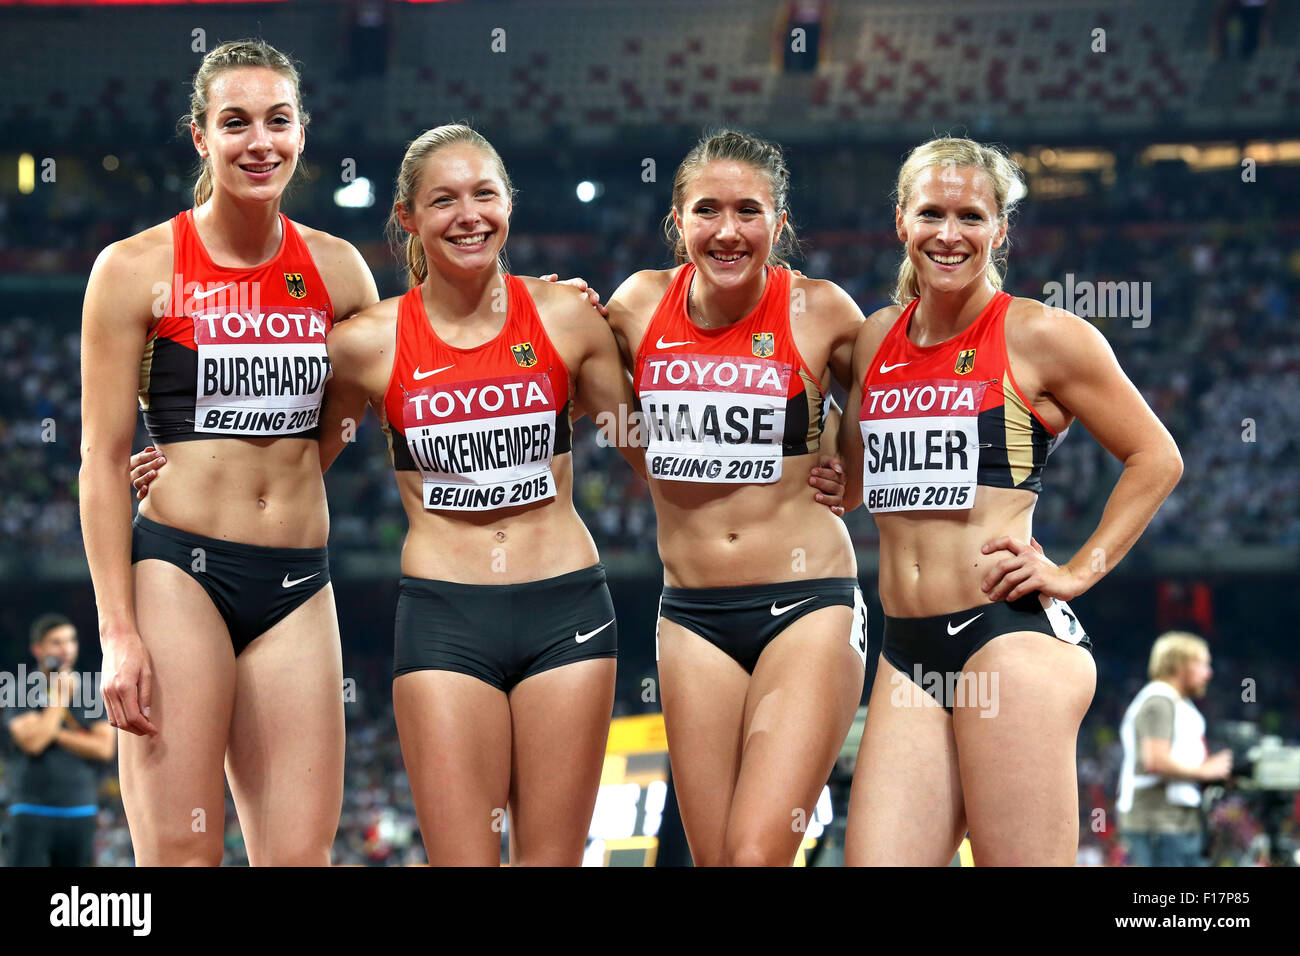 4x100 relay olympics beijing women for dating 8